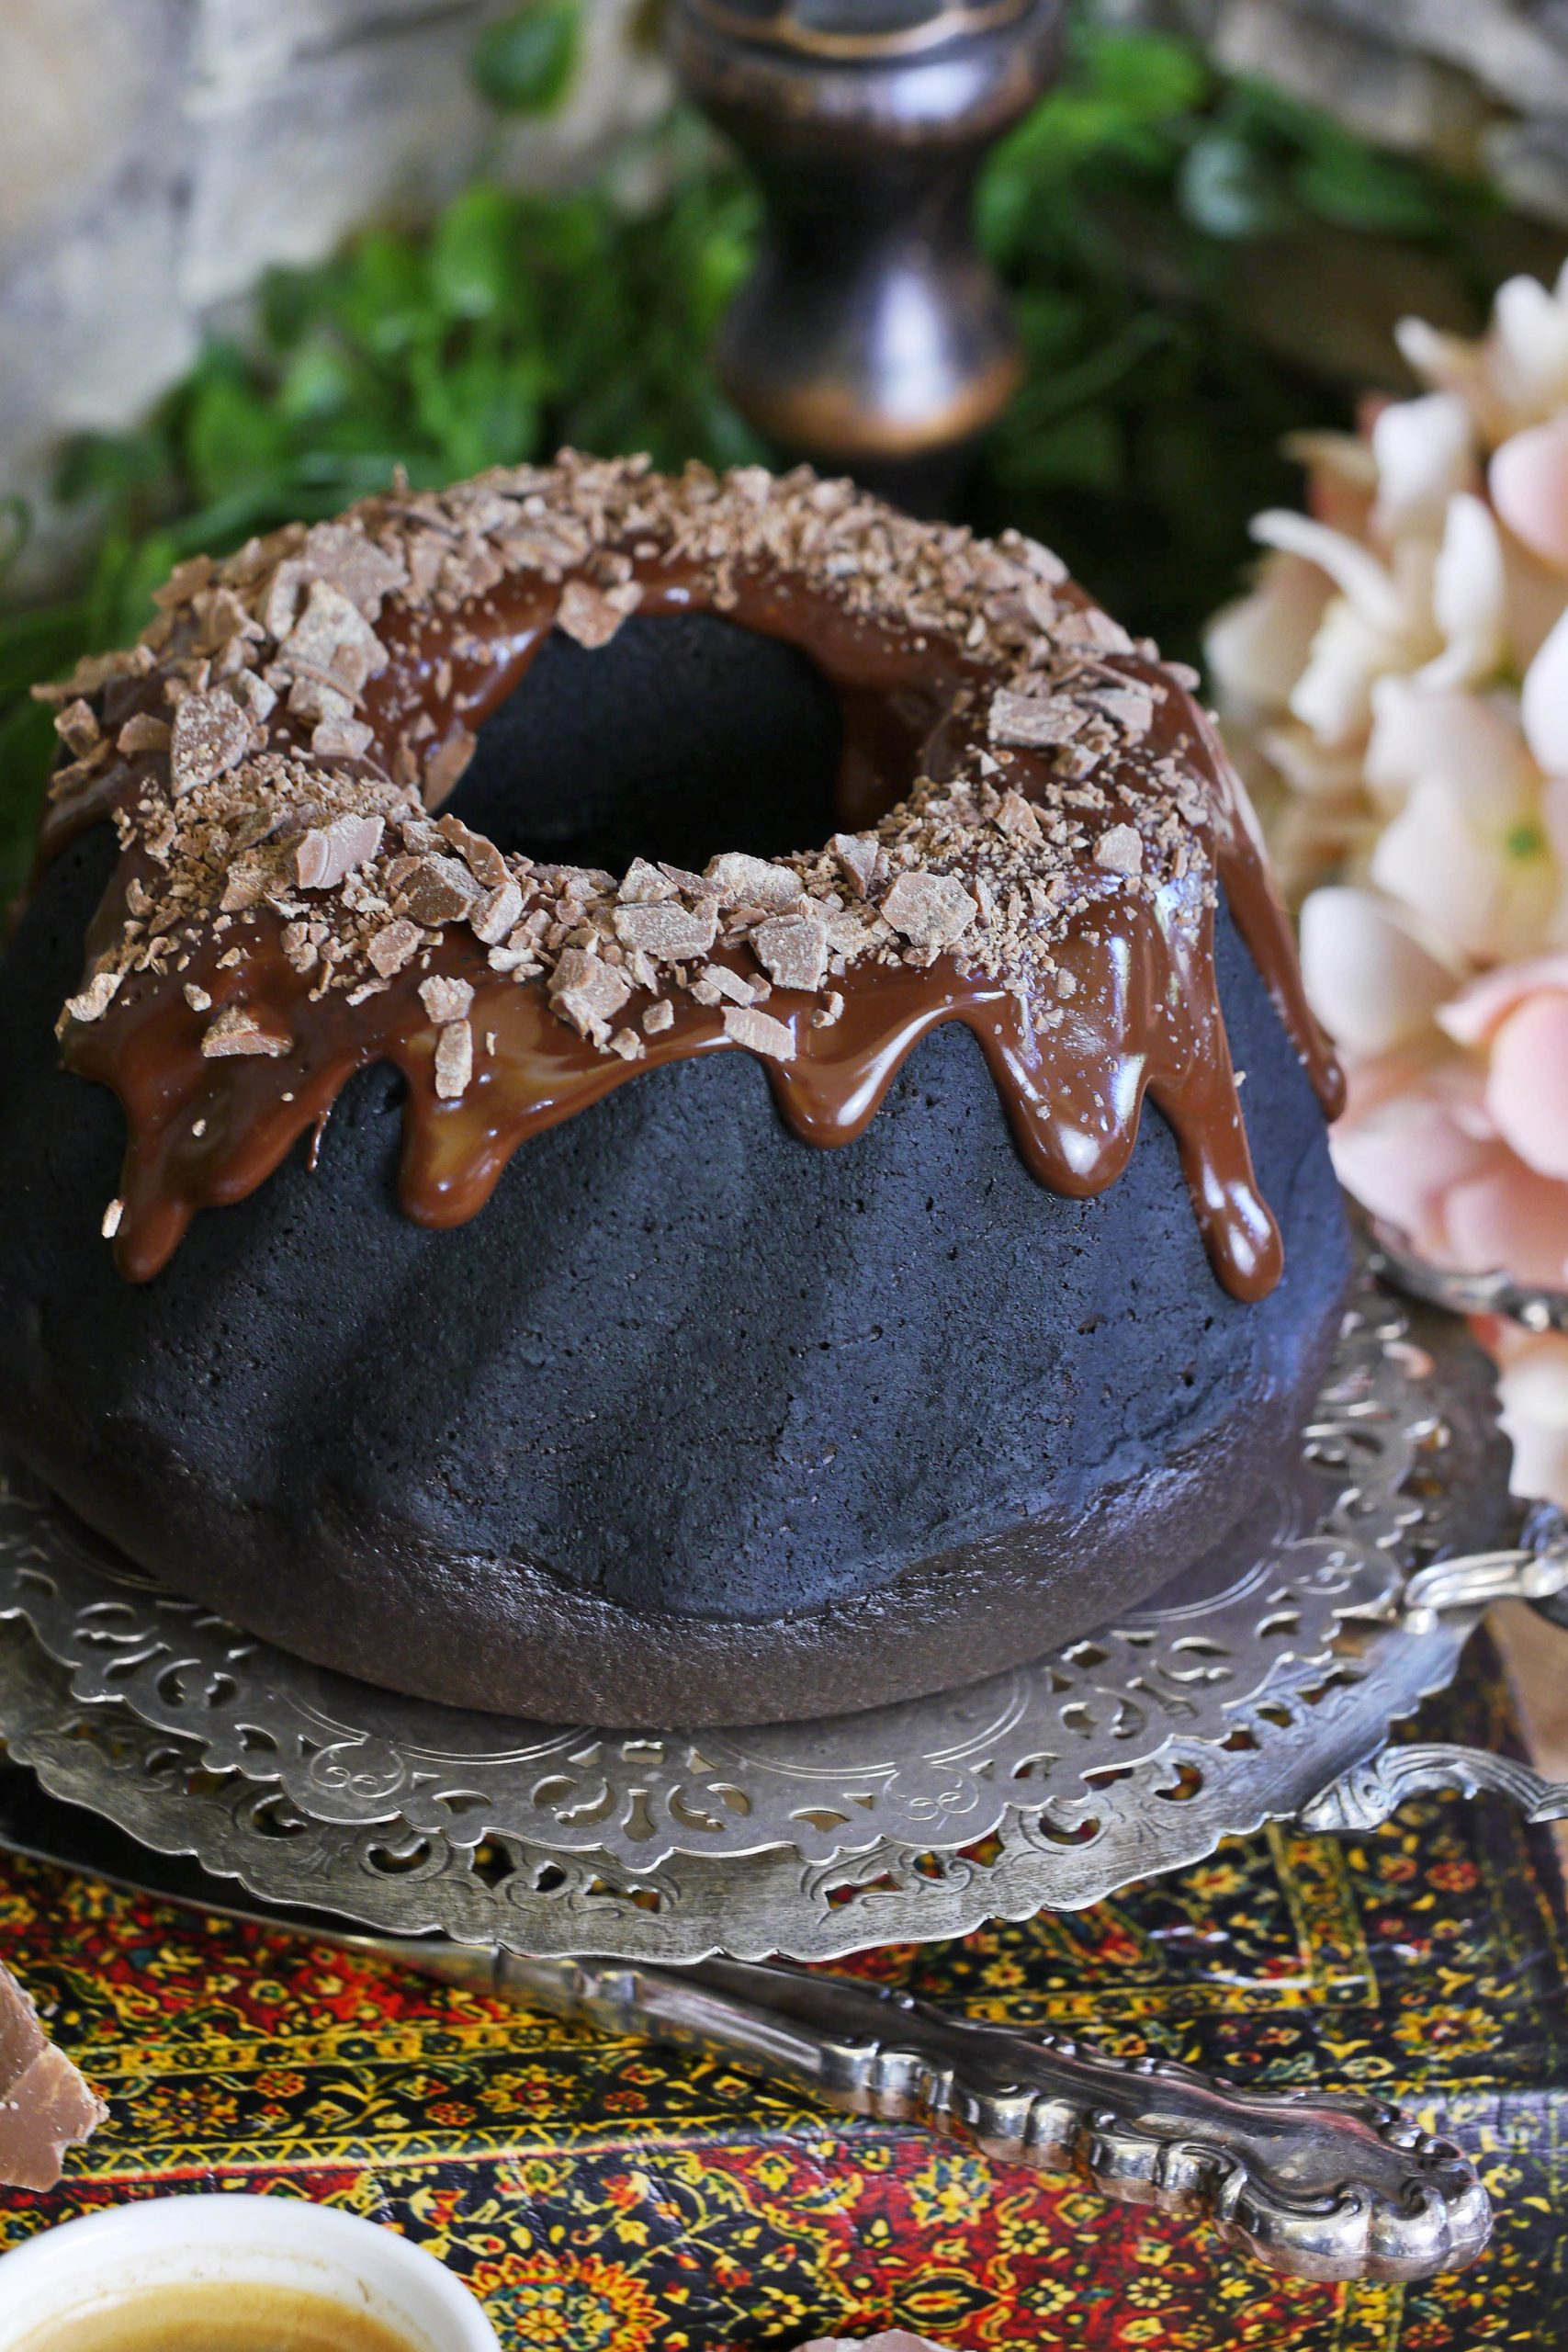 Chocolate Bundt cake with black cocoa powder